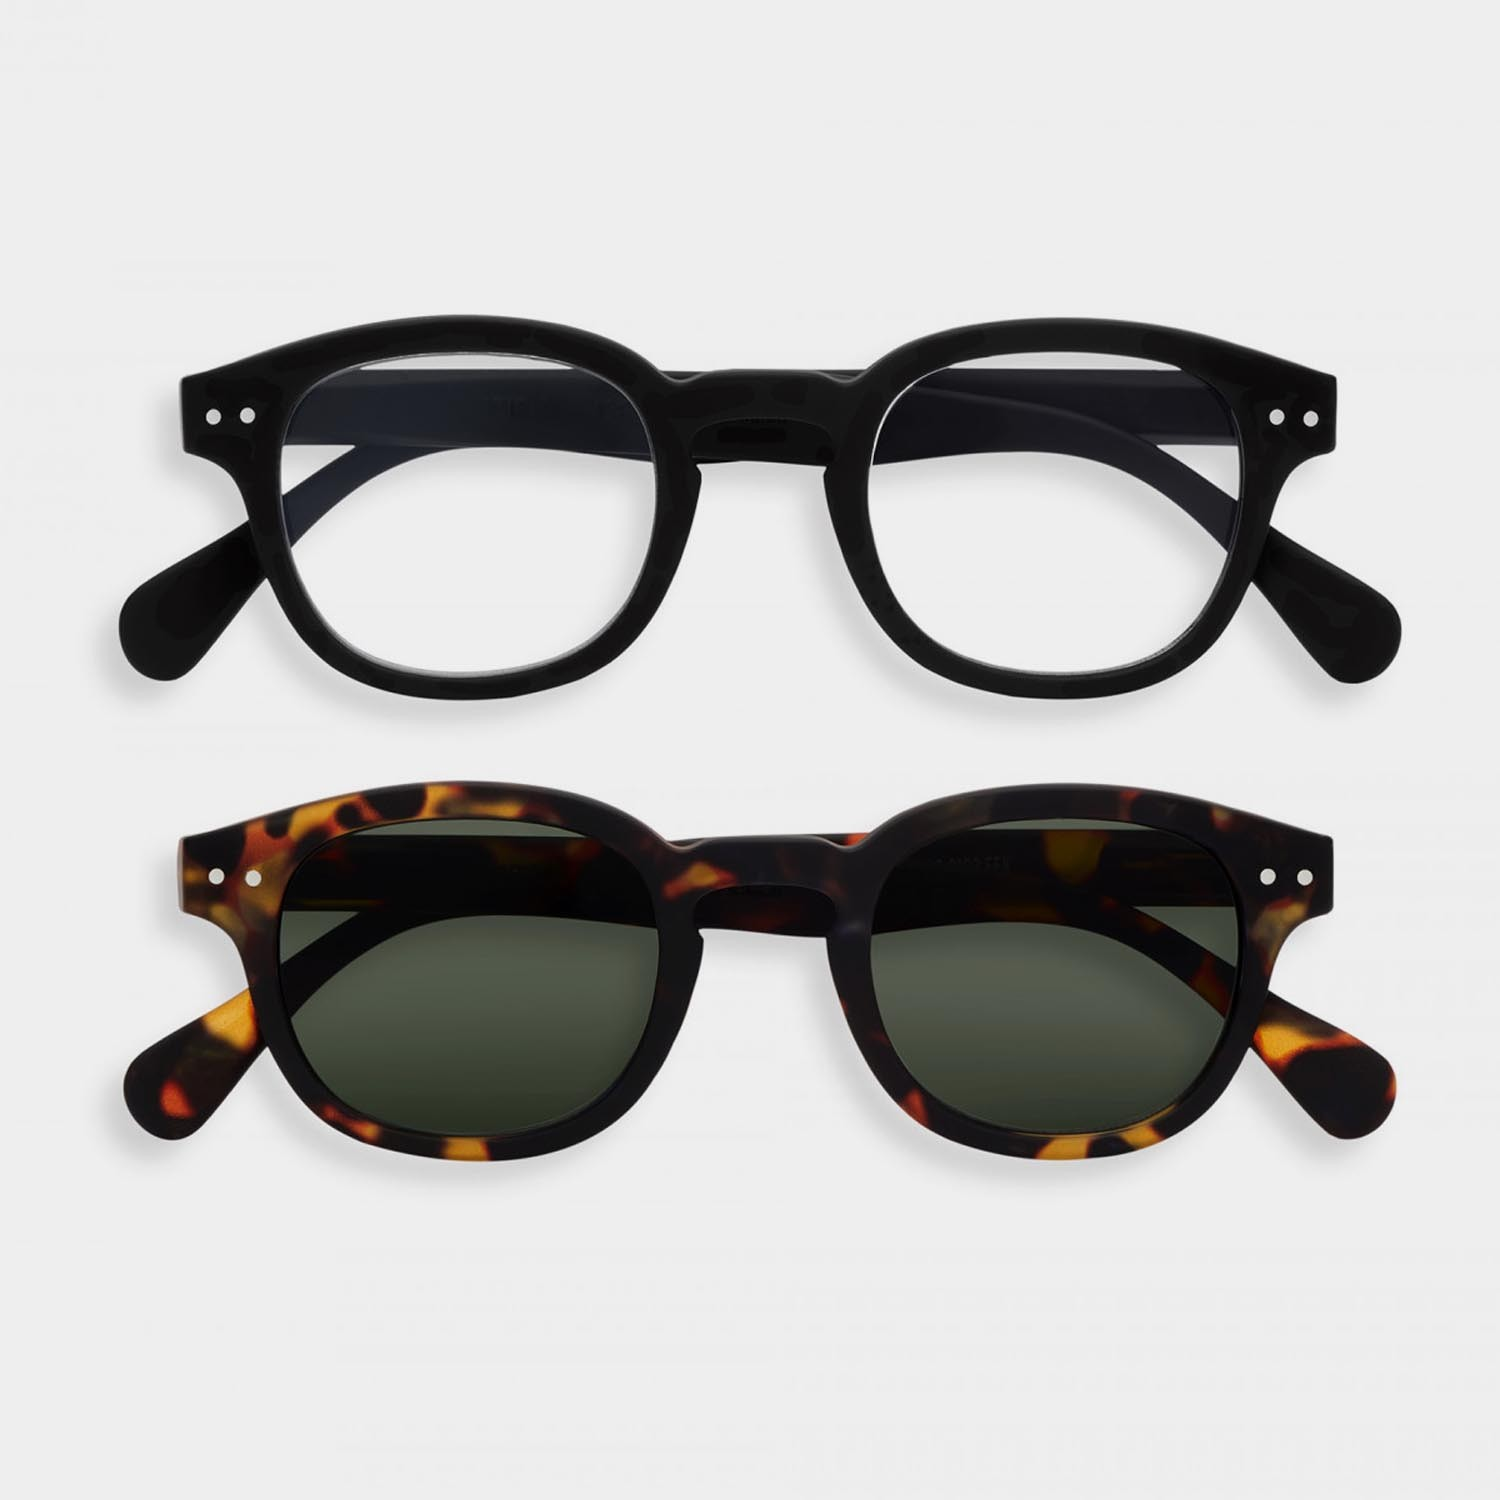 SCREEN and SUN Glasses Duo #C, Black & Tortoise